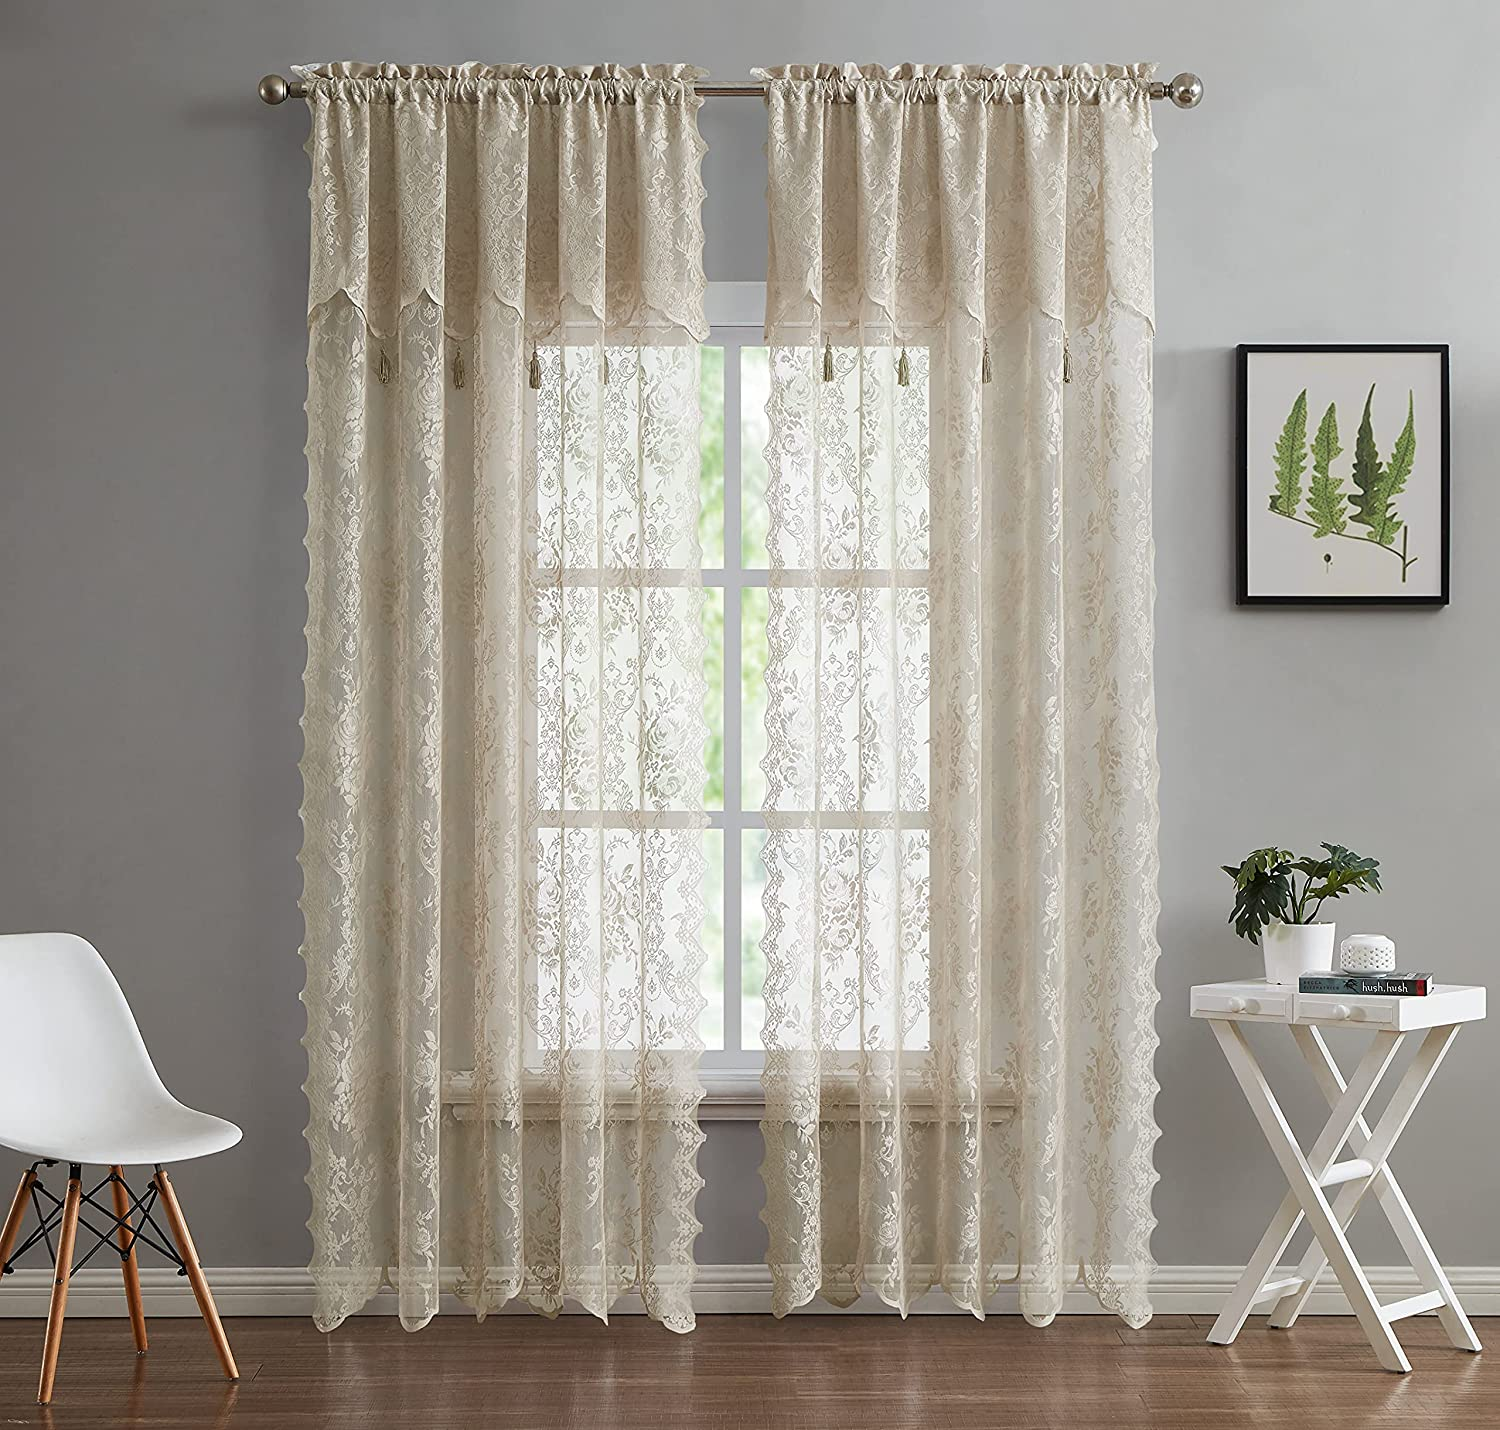 LinenZone - English Limited time for free shipping Rose Design Curtain Sheer Voile Lace Weekly update Semi